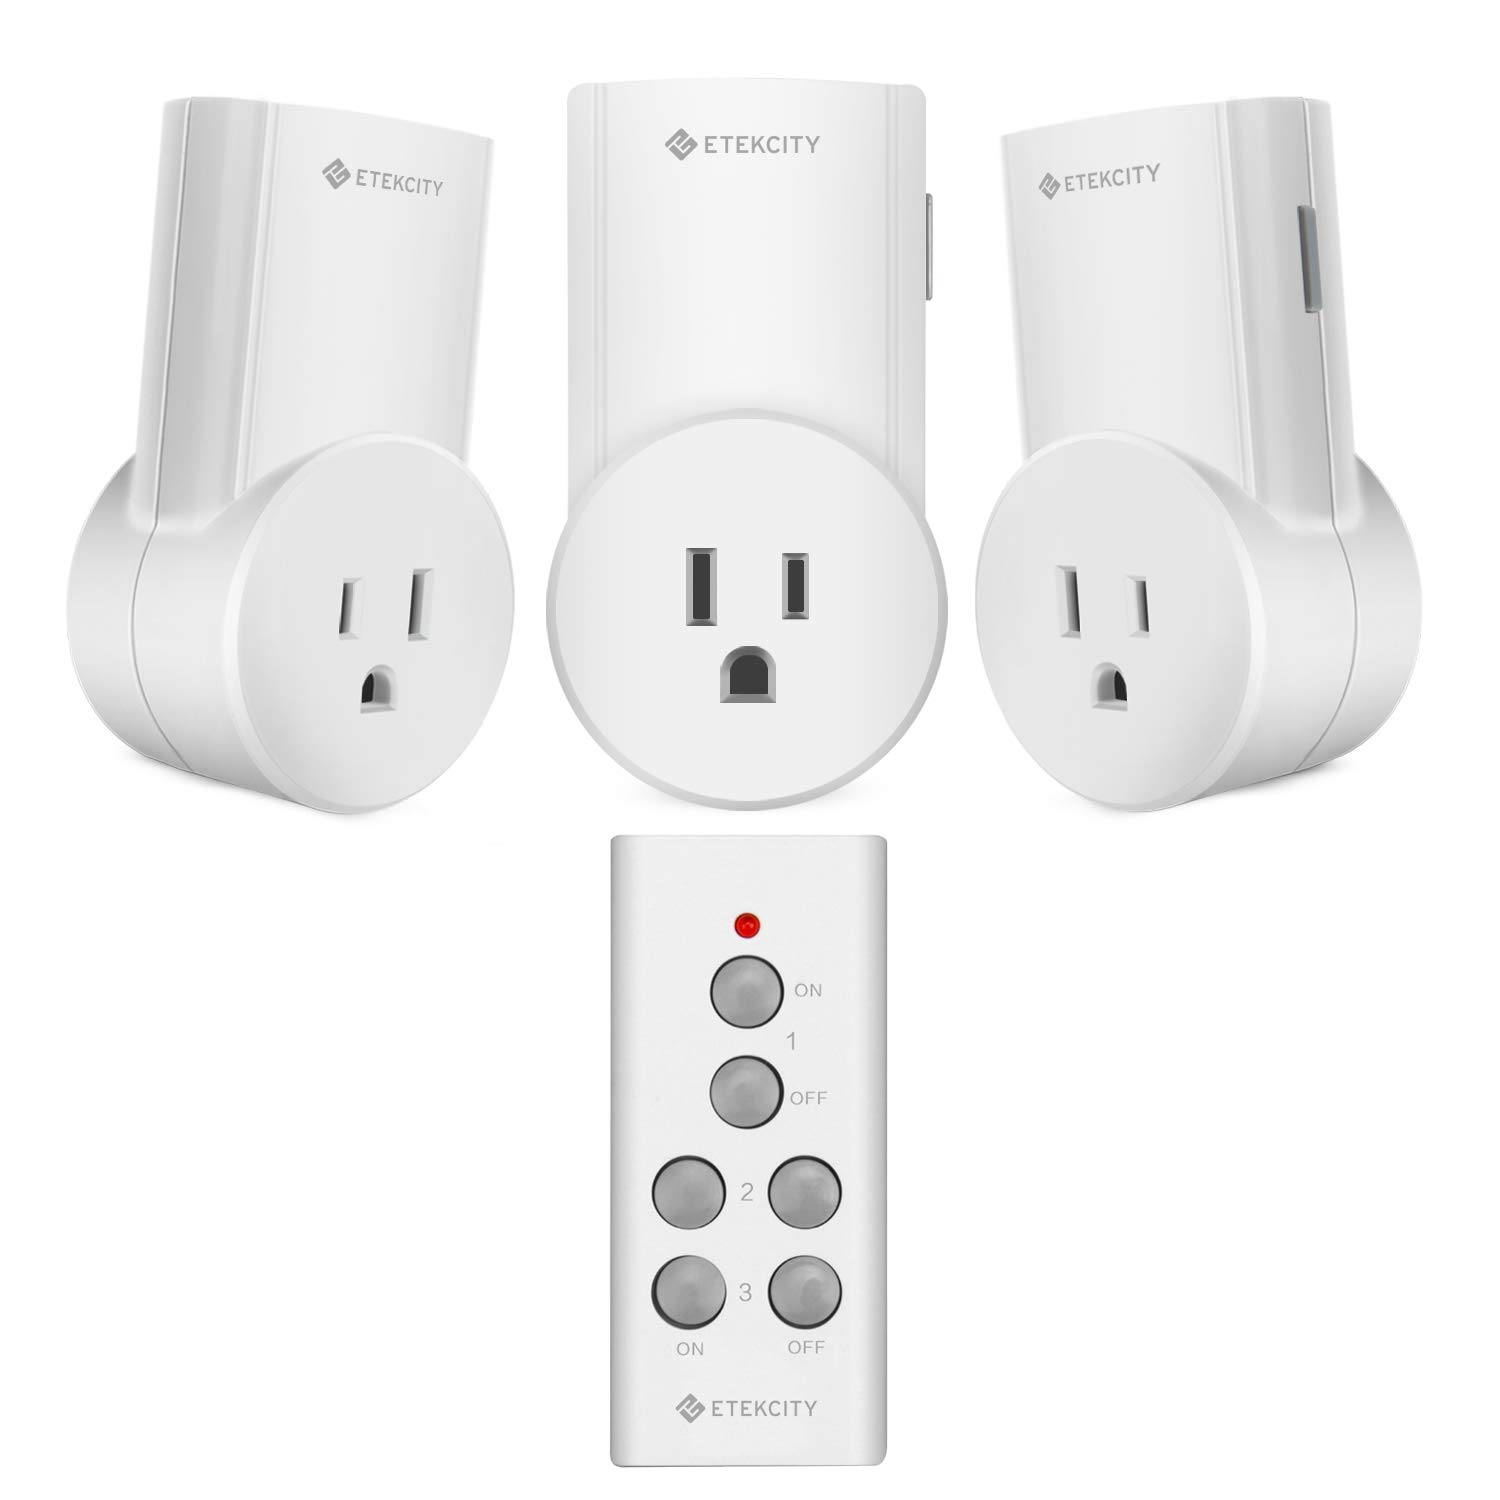 Etekcity Remote Control Outlet Wireless Light Switch for Household Appliances, Plug and Go, Up to 100 ft. Range, FCC ETL Listed, White (Learning Code, 3Rx-1Tx) by Etekcity